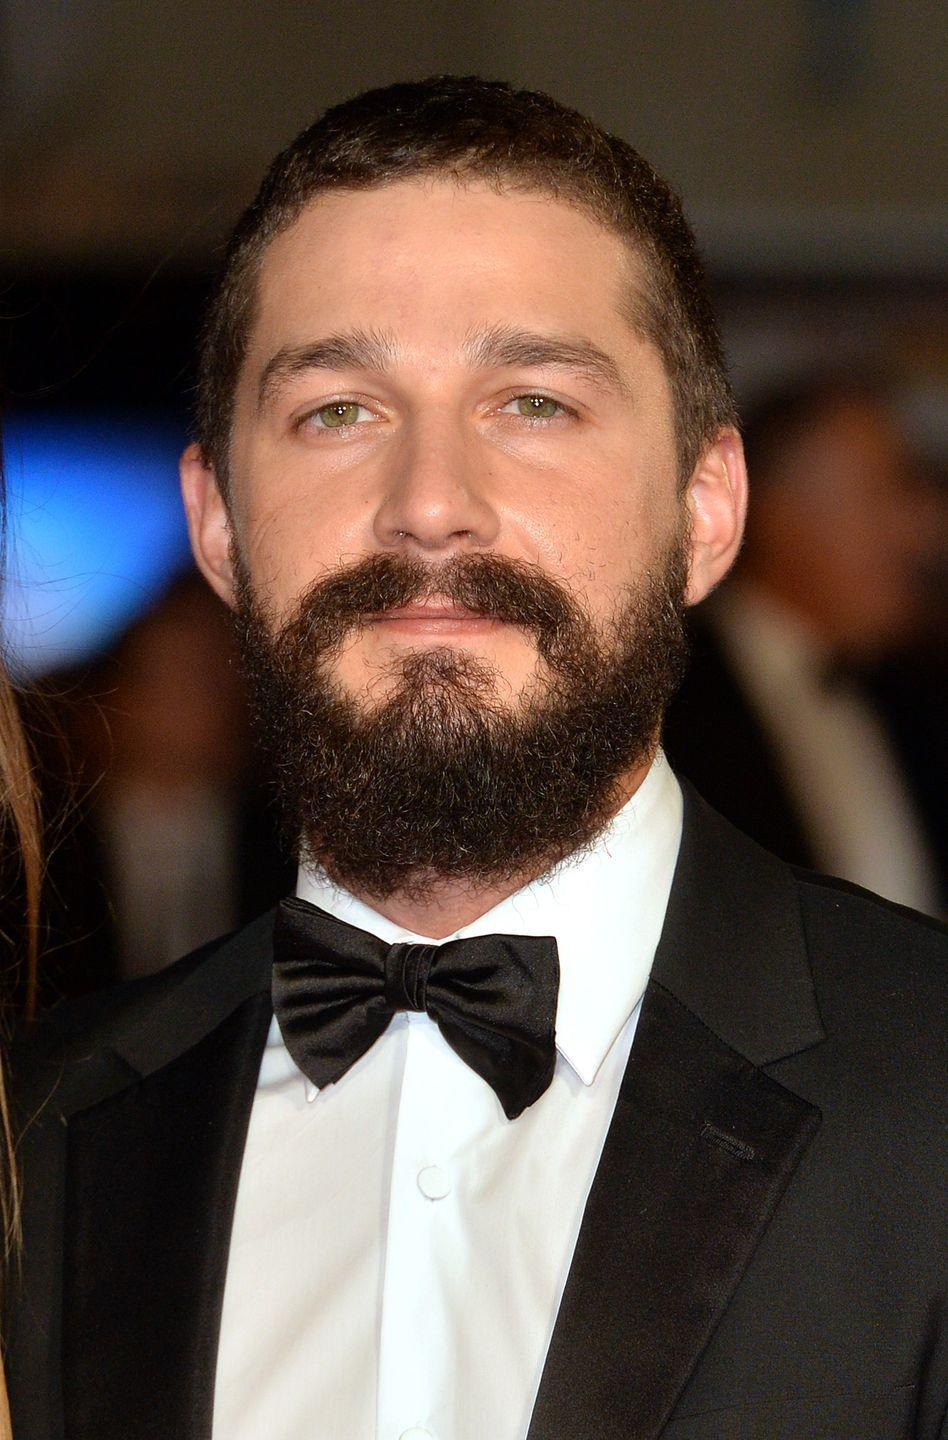 """<p>LaBeouf played Mutt in the 2008 film, <em>Indiana Jones, </em>and he's open about not feeling he did his best work. """"I feel like I dropped the ball on the legacy that people loved and cherished,"""" he told the <a href=""""http://latimesblogs.latimes.com/movies/2010/05/shia-labeouf-wall-street-2-indiana-jones-steven-spielberg.html"""" rel=""""nofollow noopener"""" target=""""_blank"""" data-ylk=""""slk:LA Times"""" class=""""link rapid-noclick-resp""""><em>LA Times</em></a>. """"You get to monkey-swinging and things like that and you can blame it on the writer and you can blame it on Steven [Spielberg]. But the actor's job is to make it come alive and make it work, and I couldn't do it. So that's my fault. Simple."""" LaBeouf's character won't be returning for a sequel.</p>"""